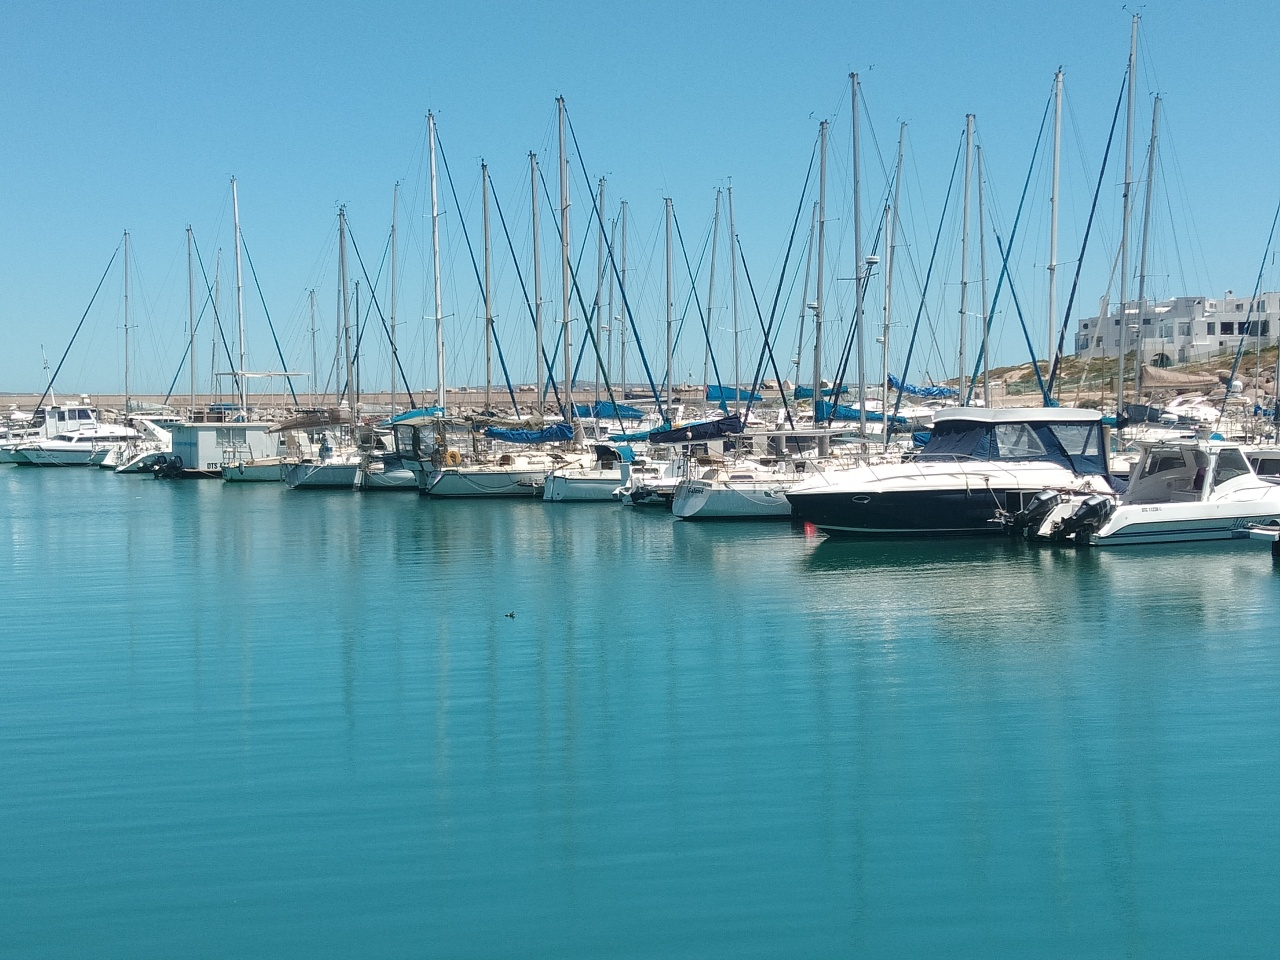 Nr 4 of … 10 FUN THINGS TO DO IN LANGEBAAN (South Africa)